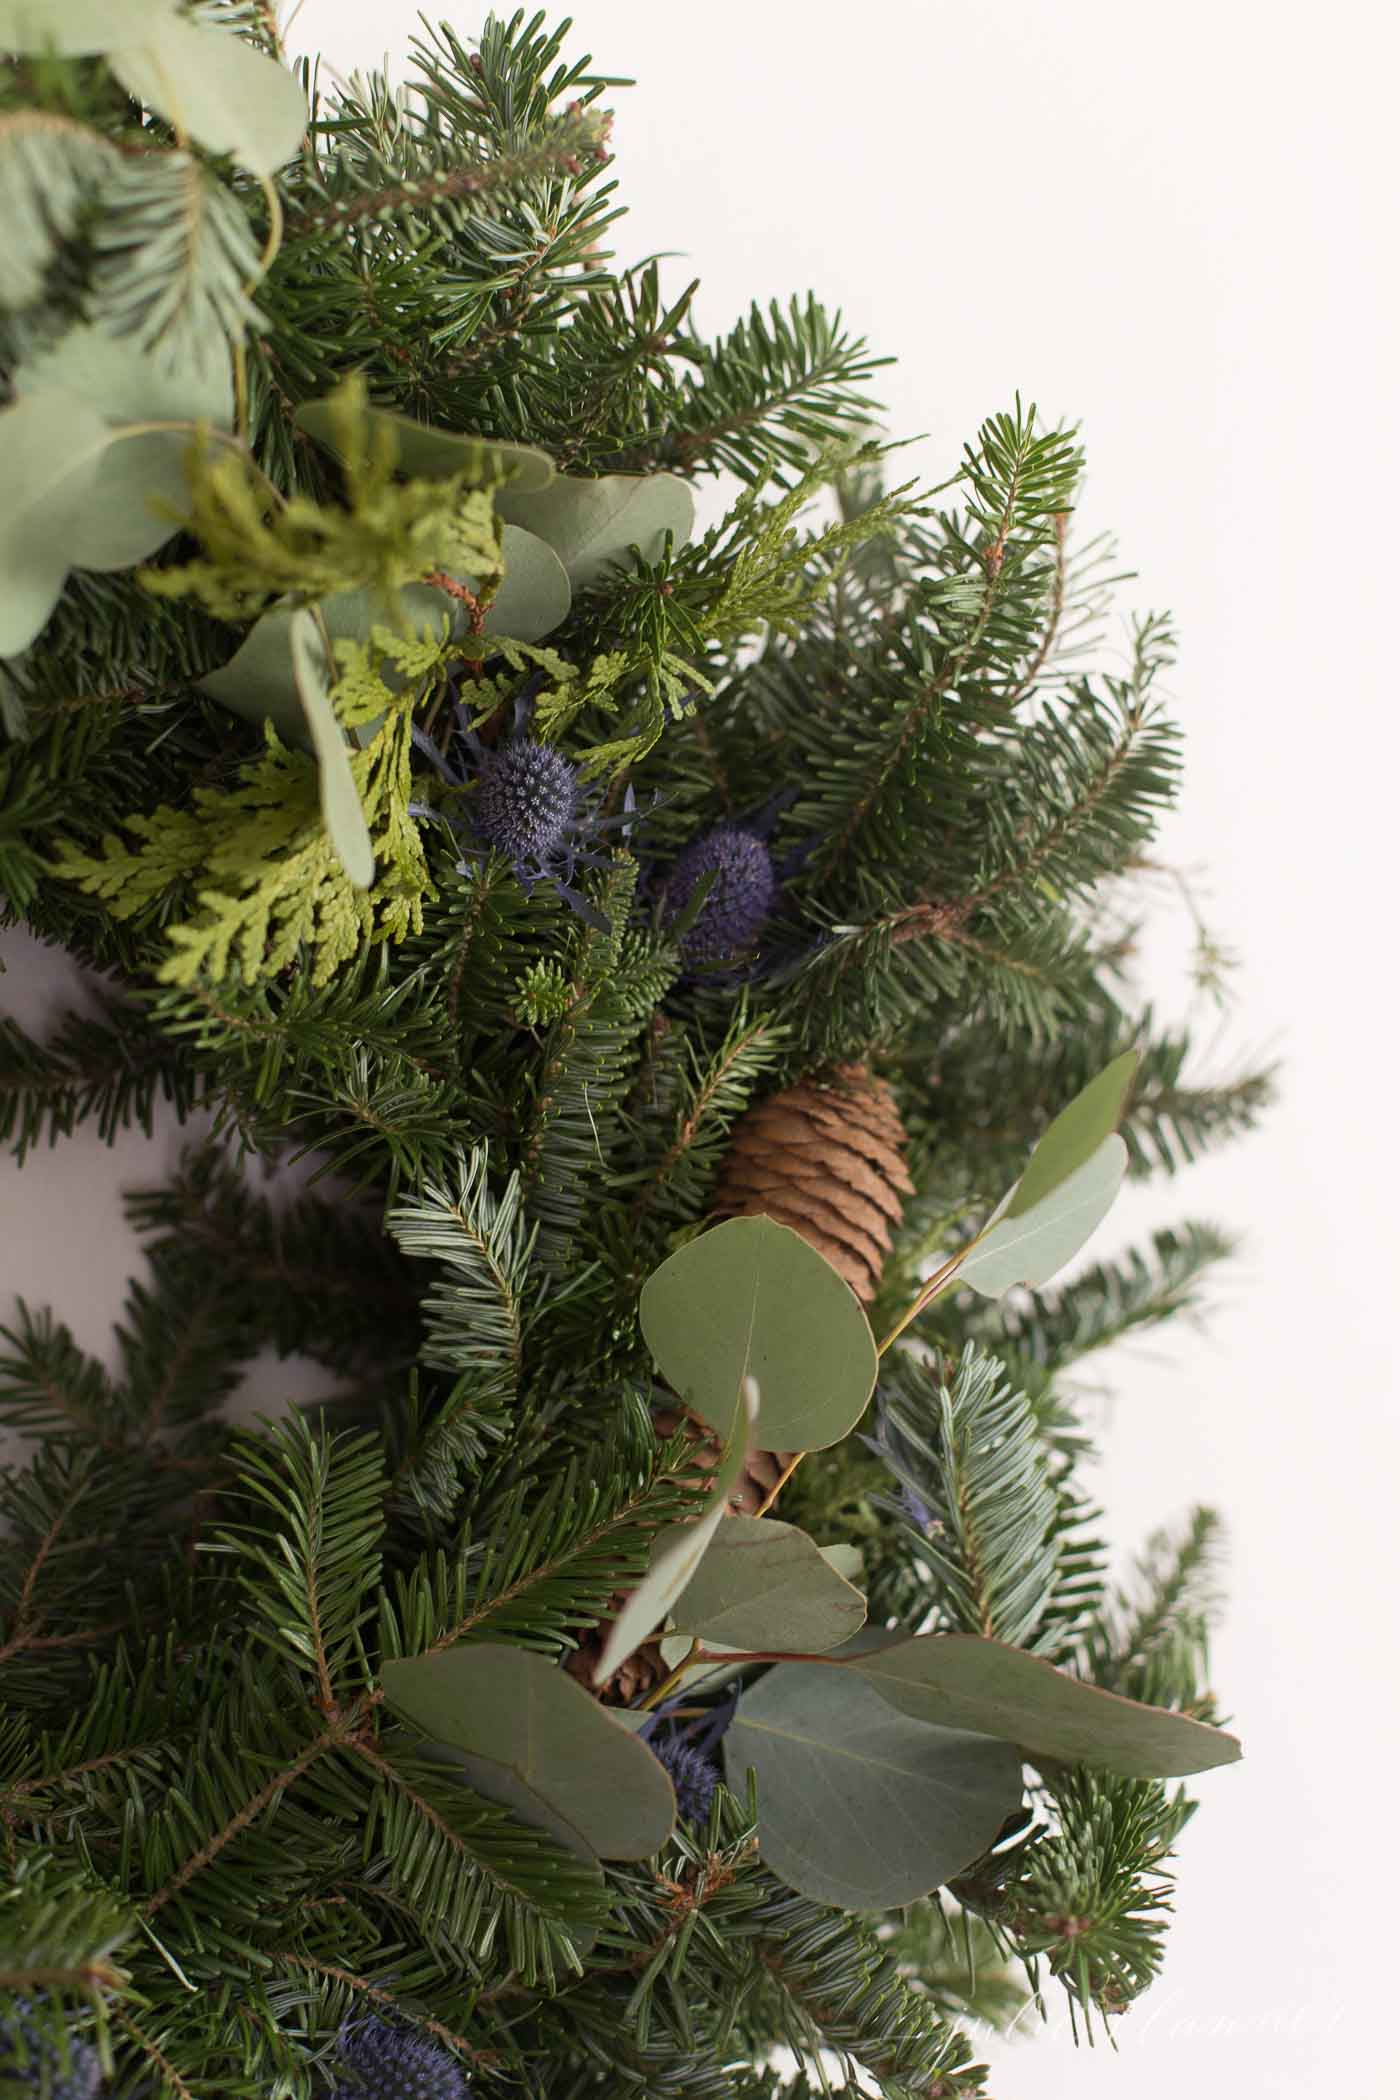 A close up of a fresh evergreen christmas wreath.